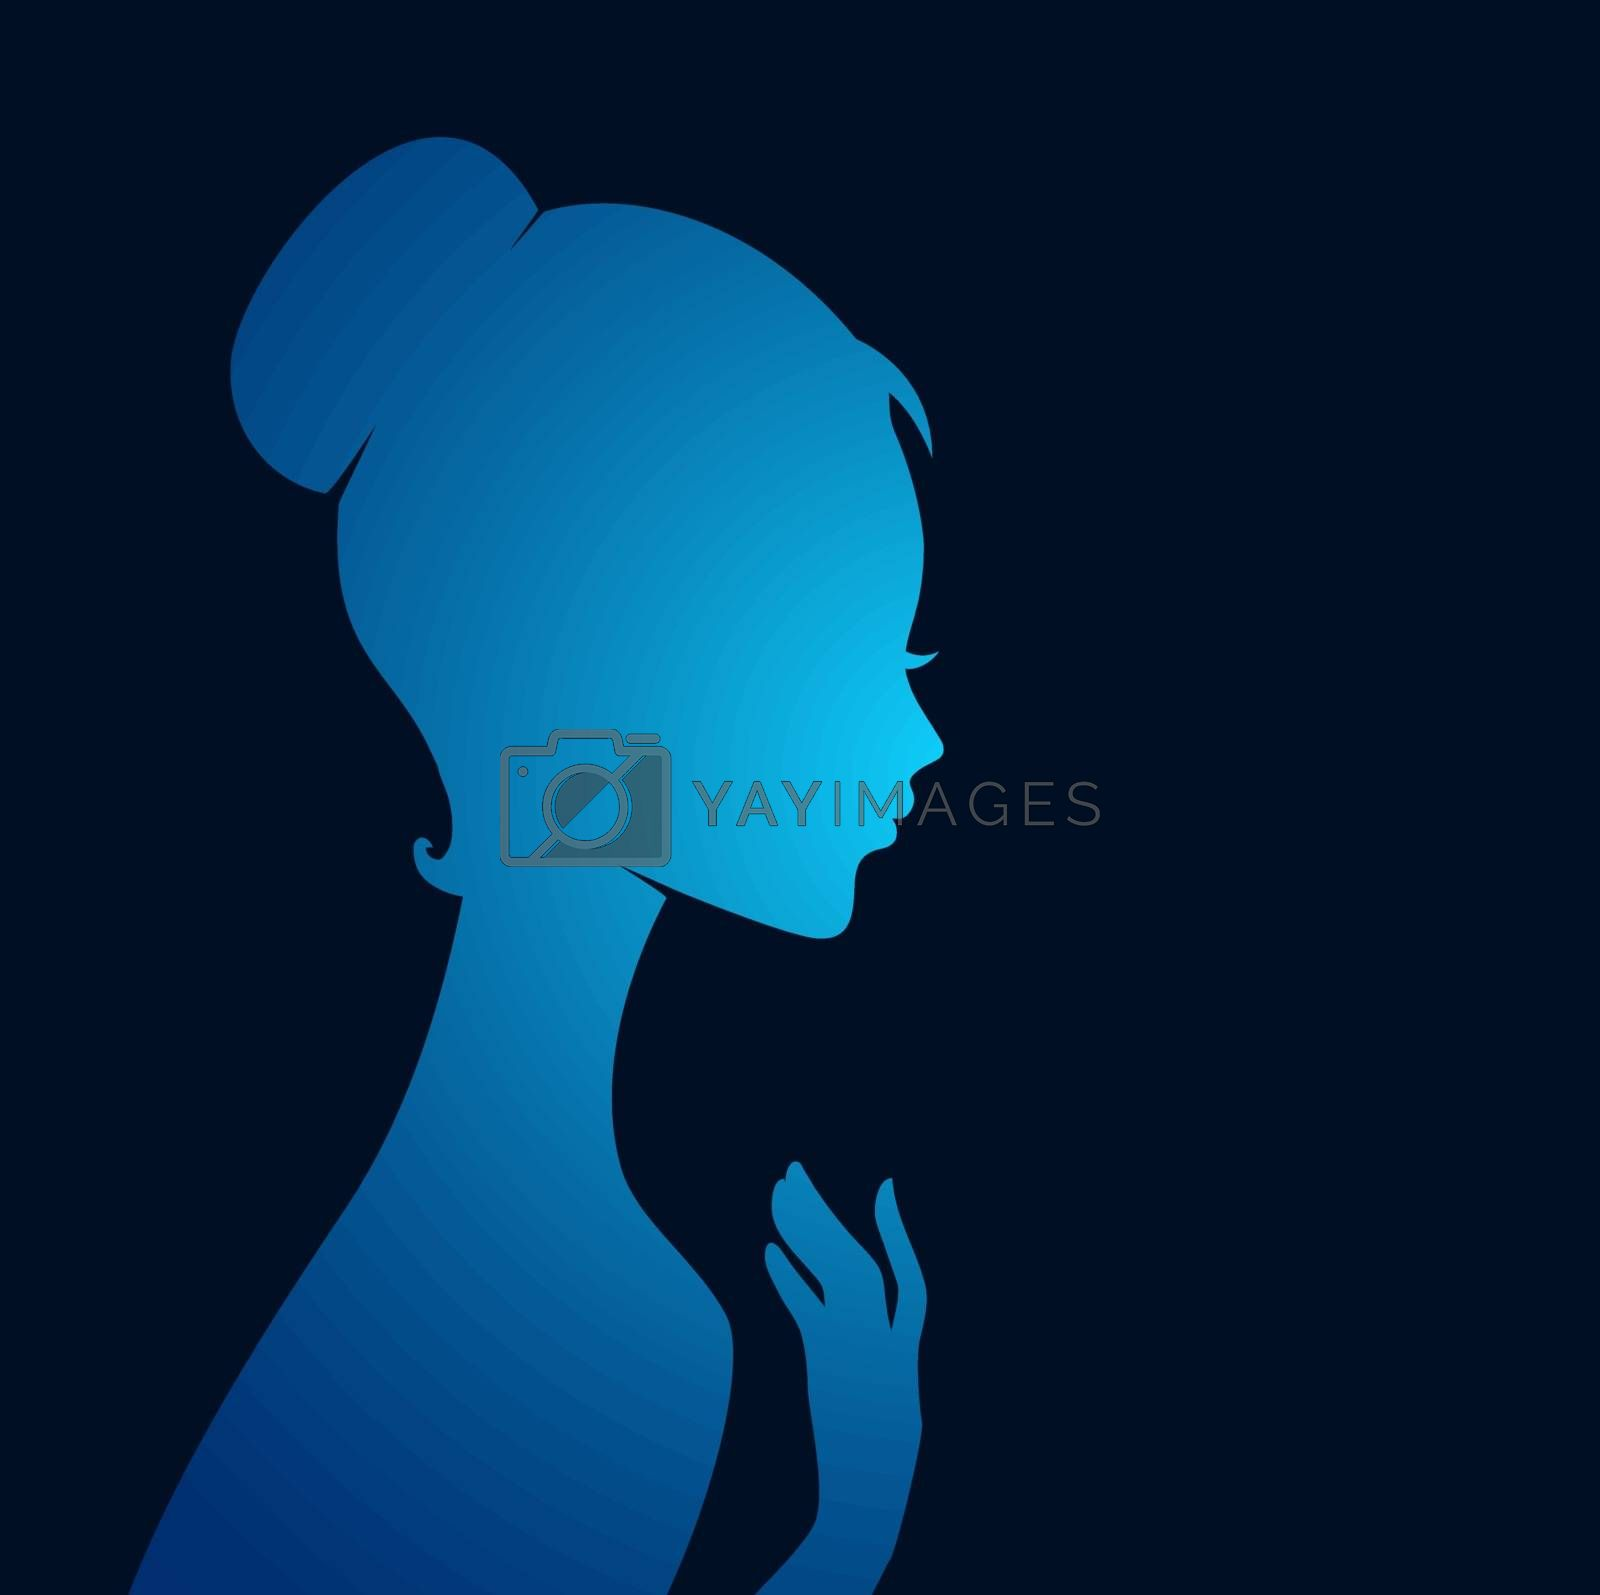 Vector illustration of Beautiful woman's silhouette image